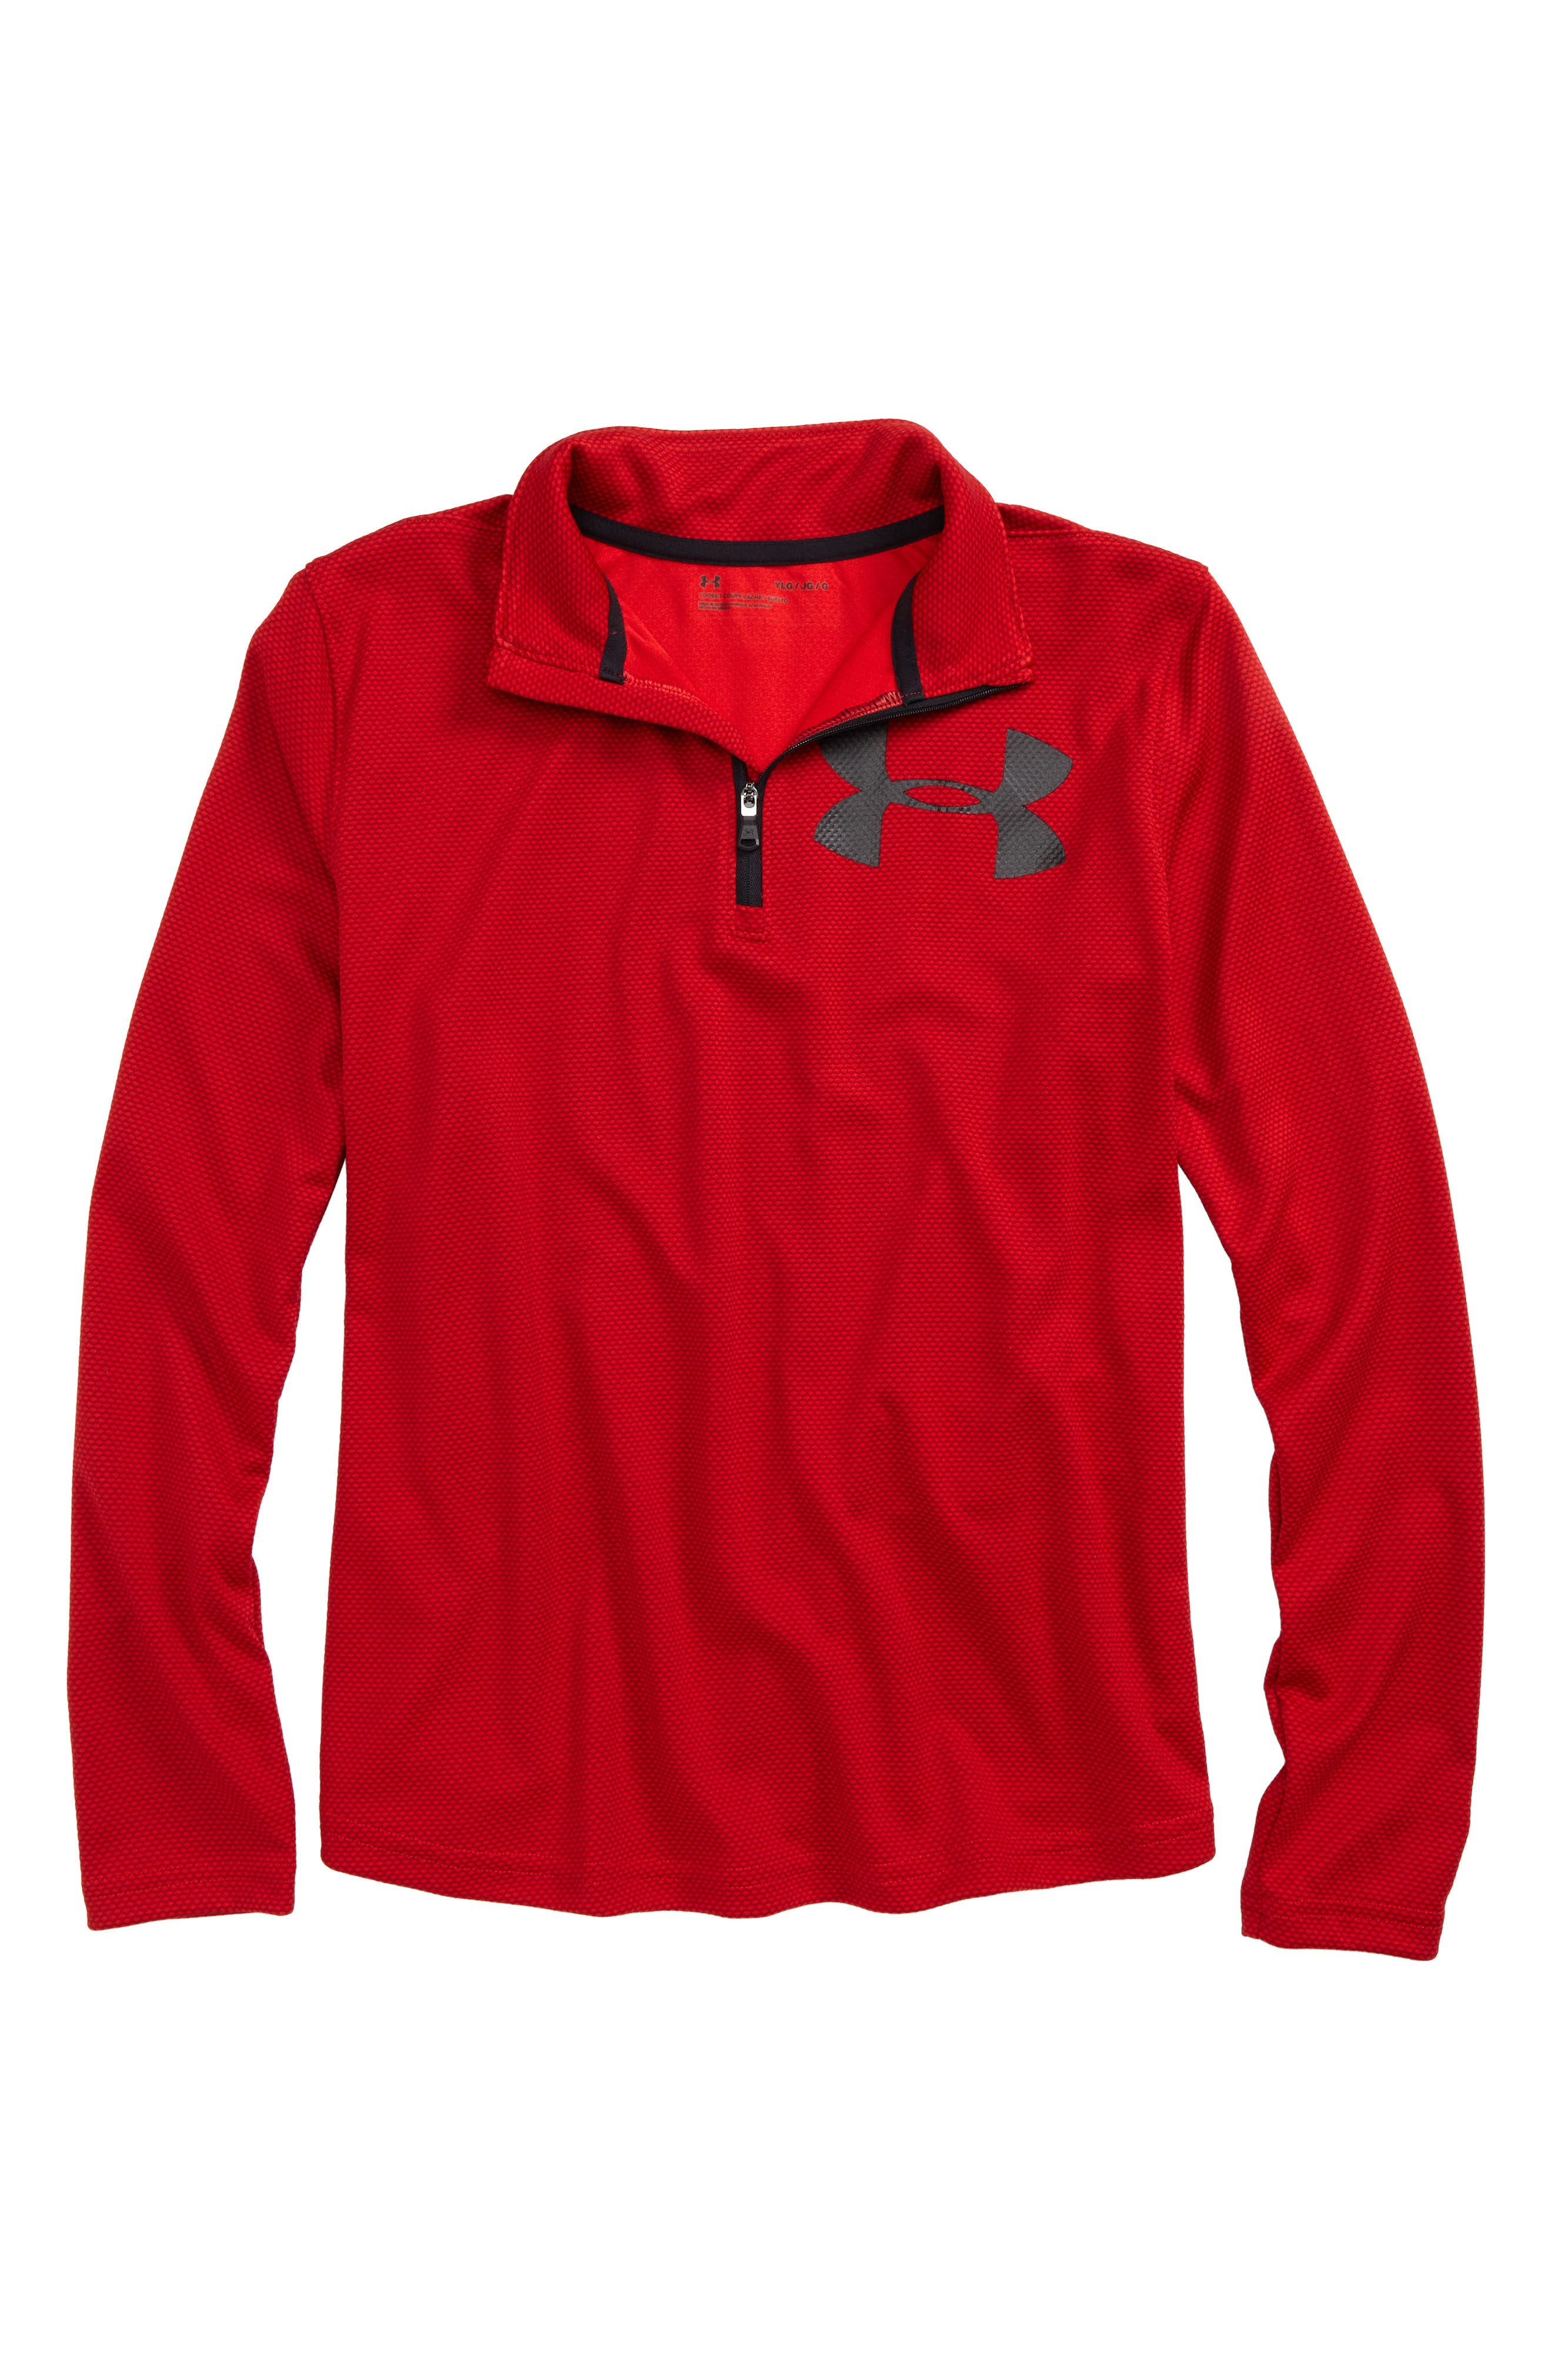 Textured Quarter Zip Top,                         Main,                         color, Red/ Black